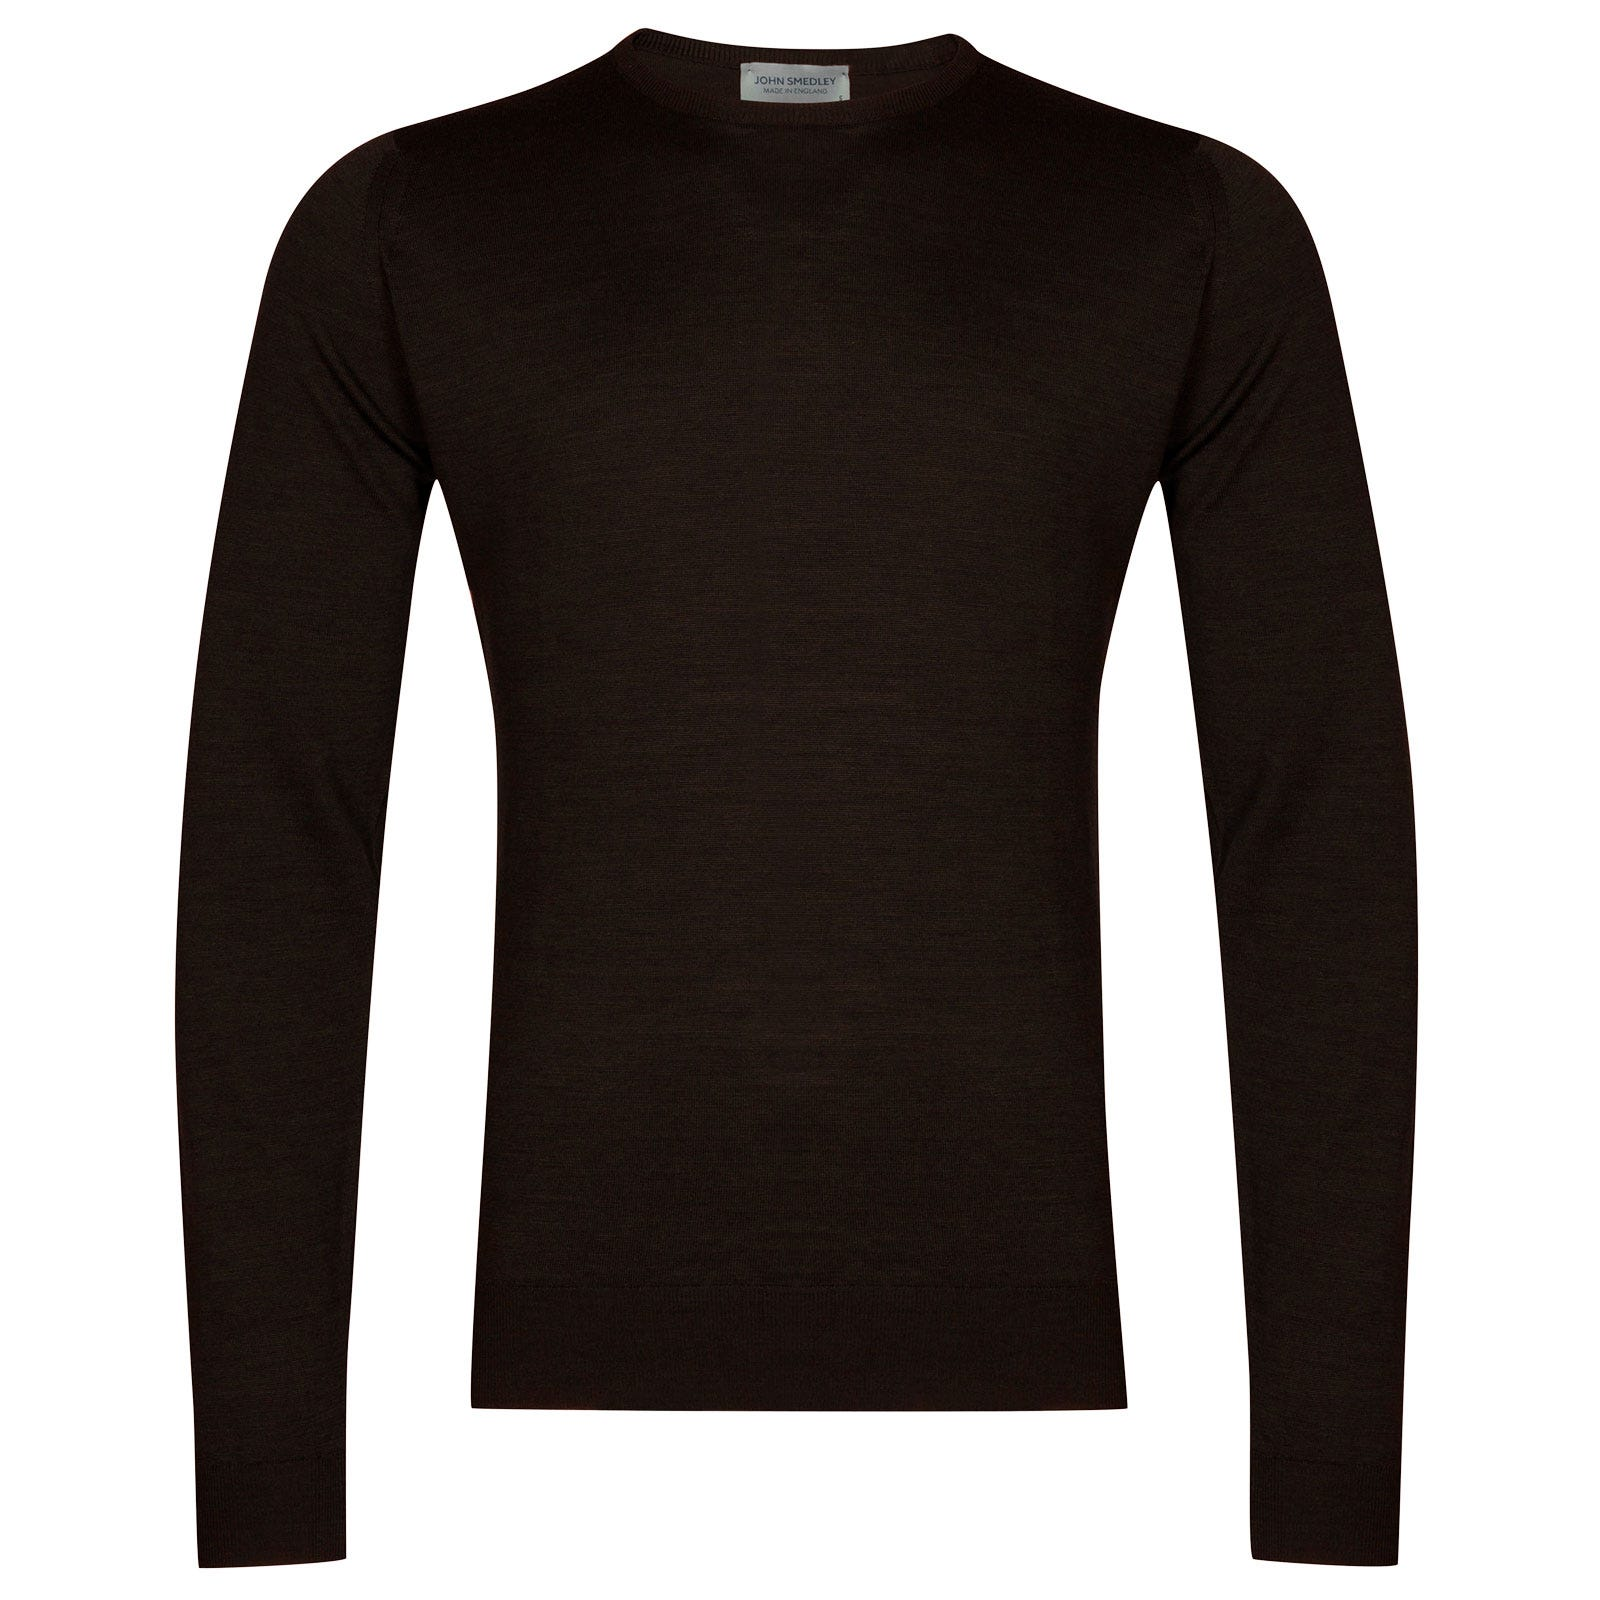 John Smedley lundy Merino Wool Pullover in Chestnut-S